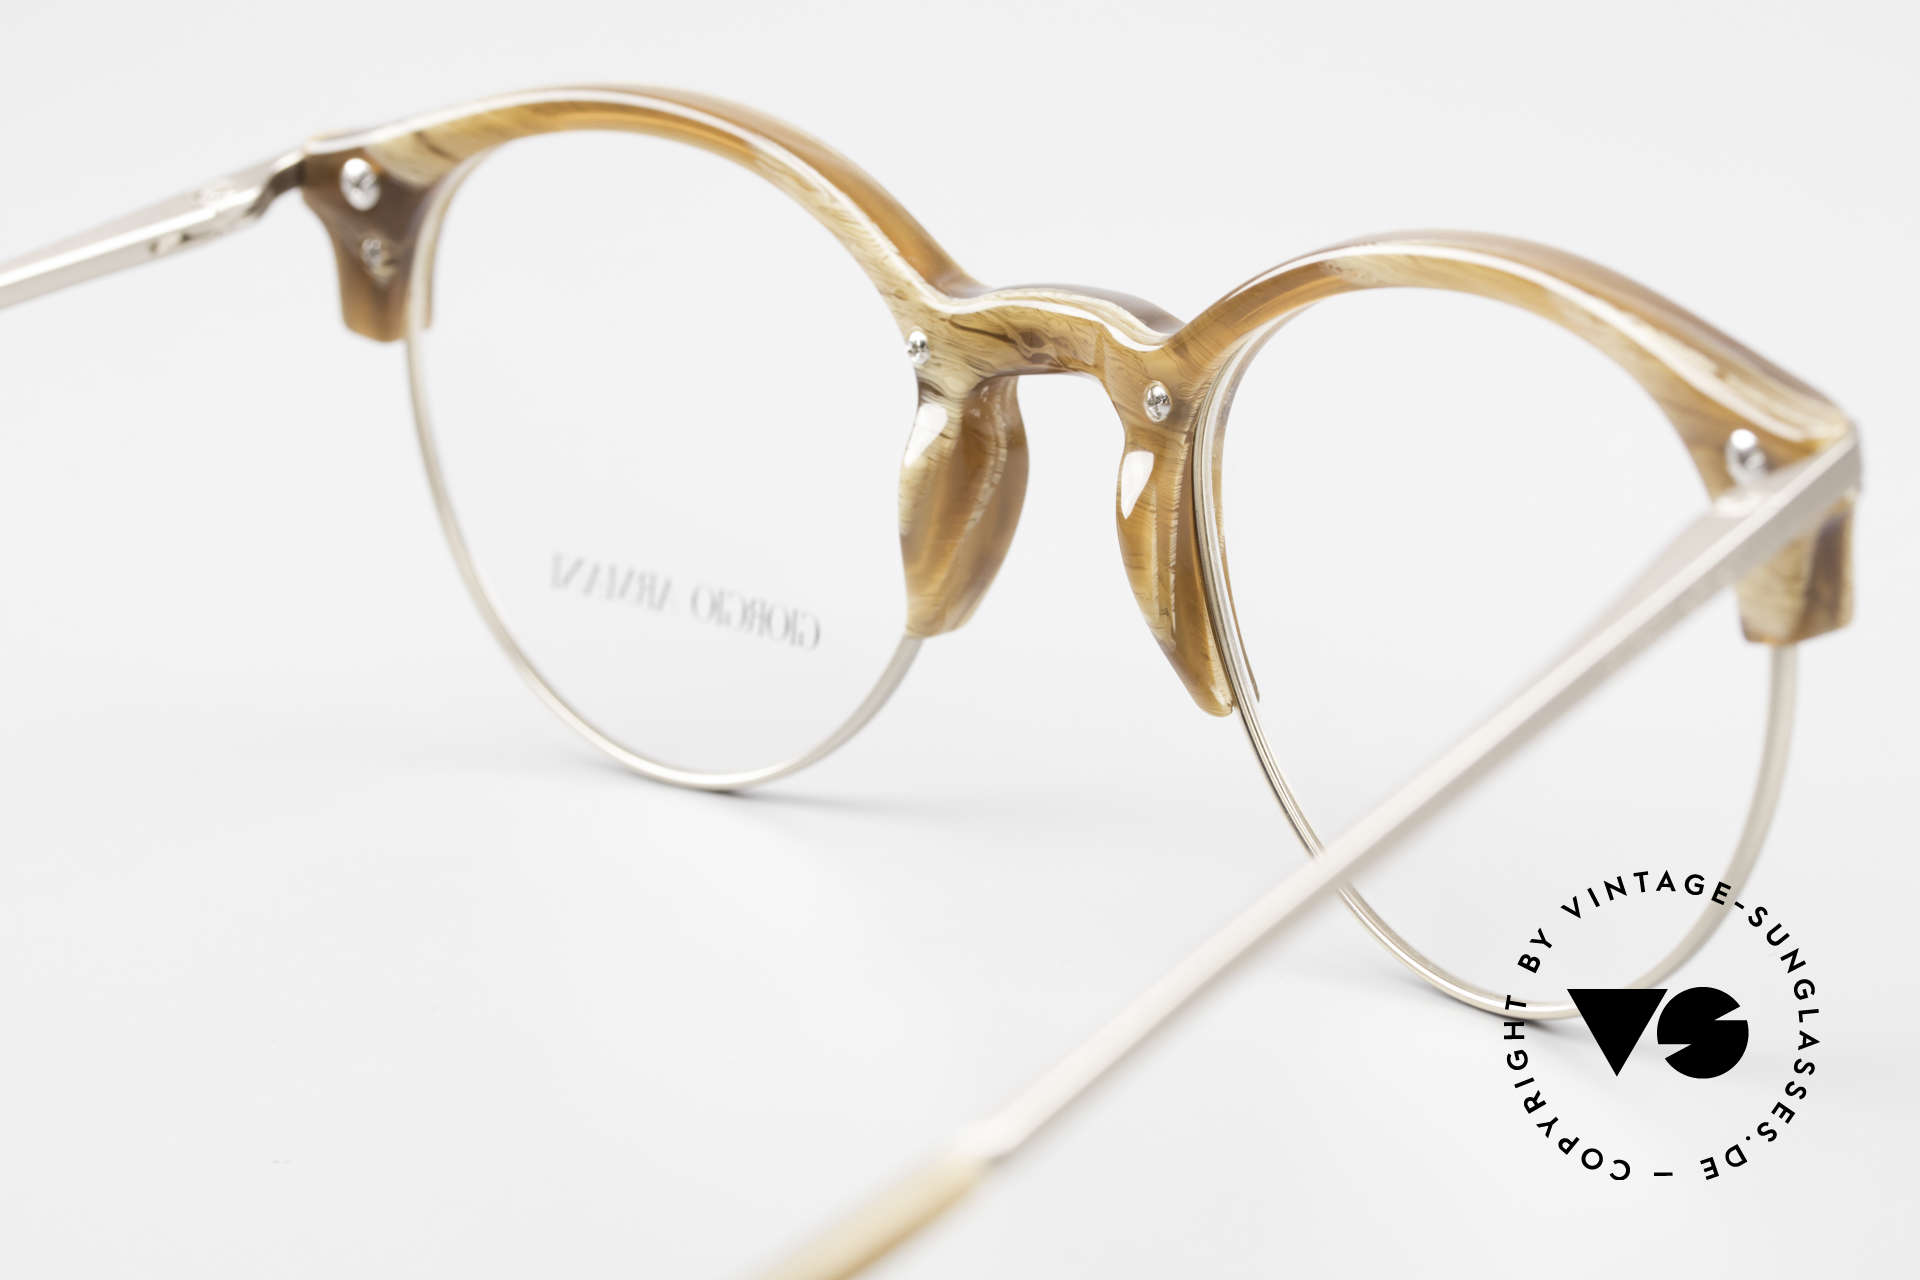 Giorgio Armani 7014 Panto Frame With Spring Hinges, the frame can be glazed with optical lenses of any kind, Made for Men and Women